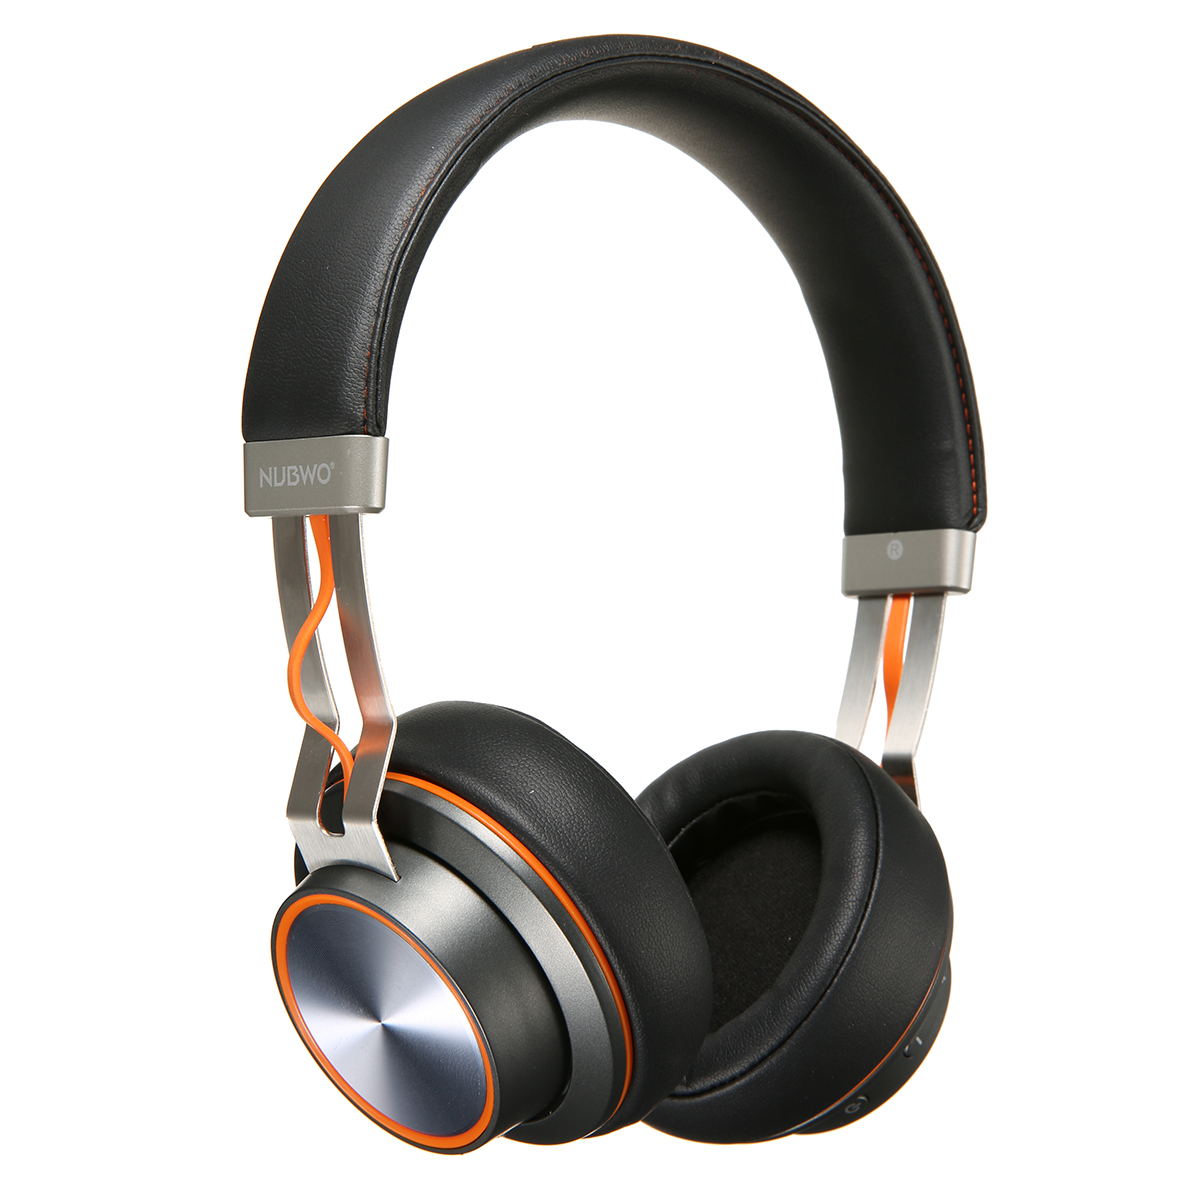 Bluetooth Headphones, ELEGIANT S2 Over Ear Bluetooth Headset Hi-Fi Stereo Headphones with Adjustable Headband, Soft-Protein Earpads, 16-Hour Playtime and Wired Mode for Android